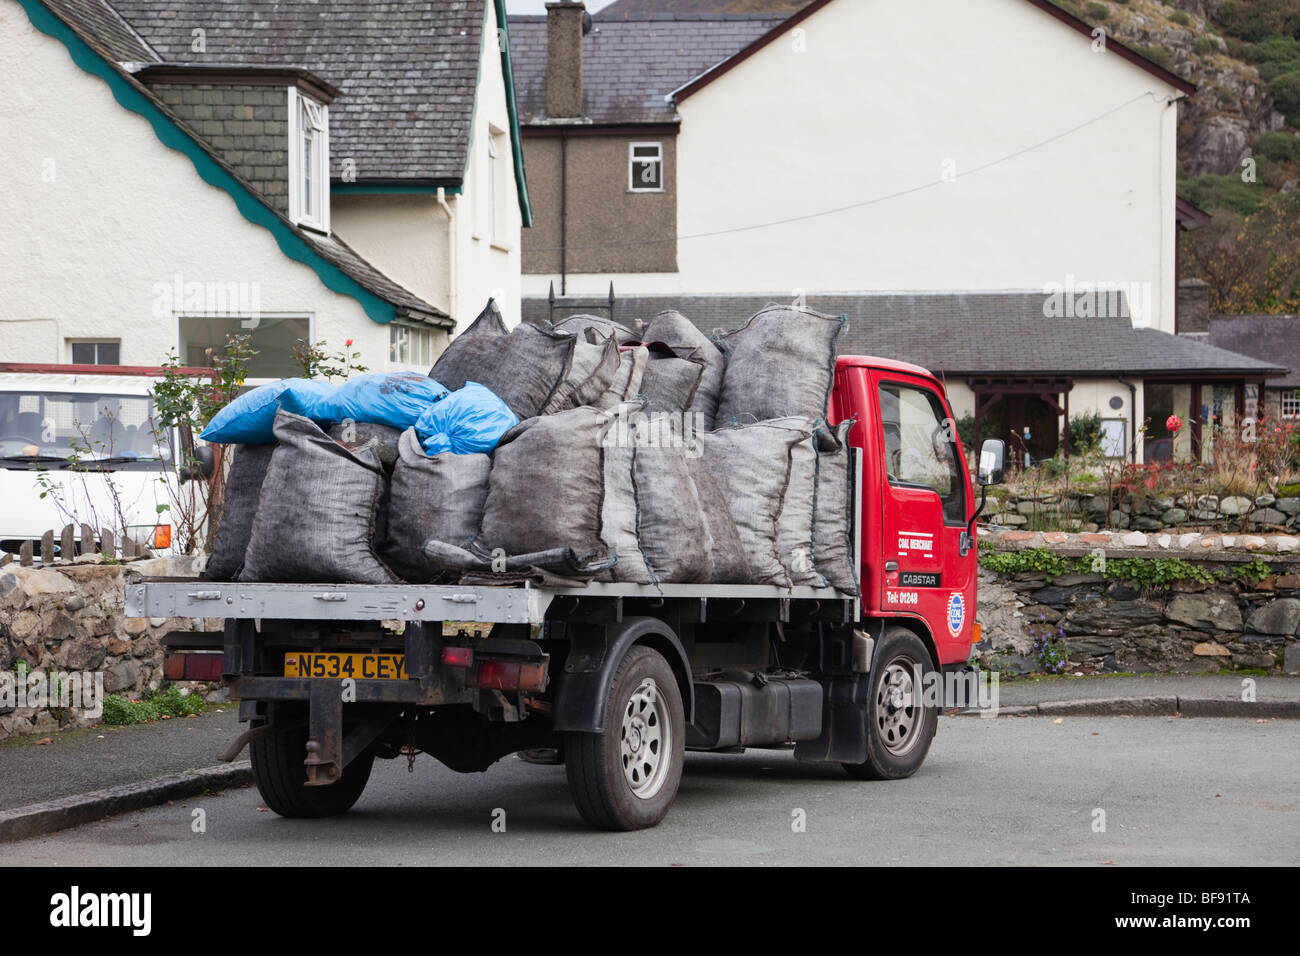 Britain, UK, Europe. Coal merchant delivering to a house with sacks of fuel on the truck - Stock Image